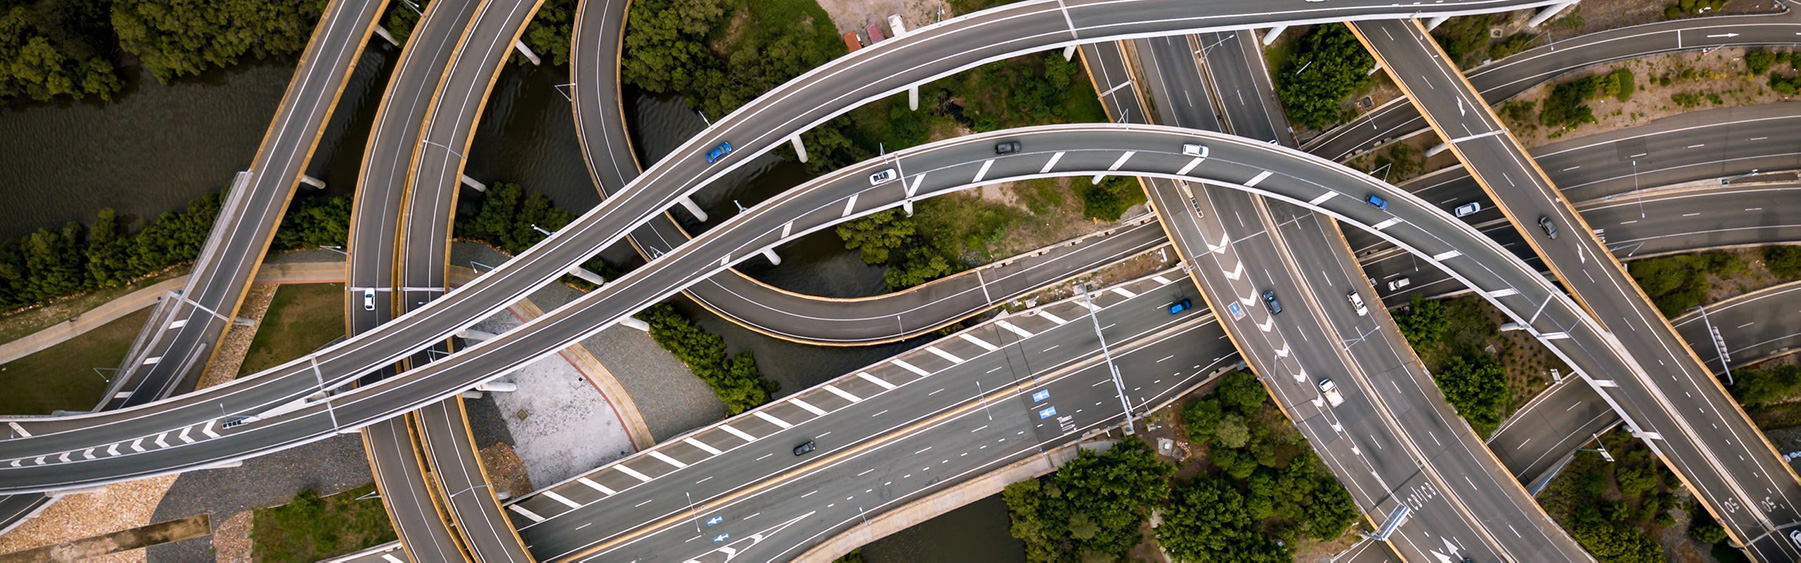 Overhead view of a complicated freeway interchange